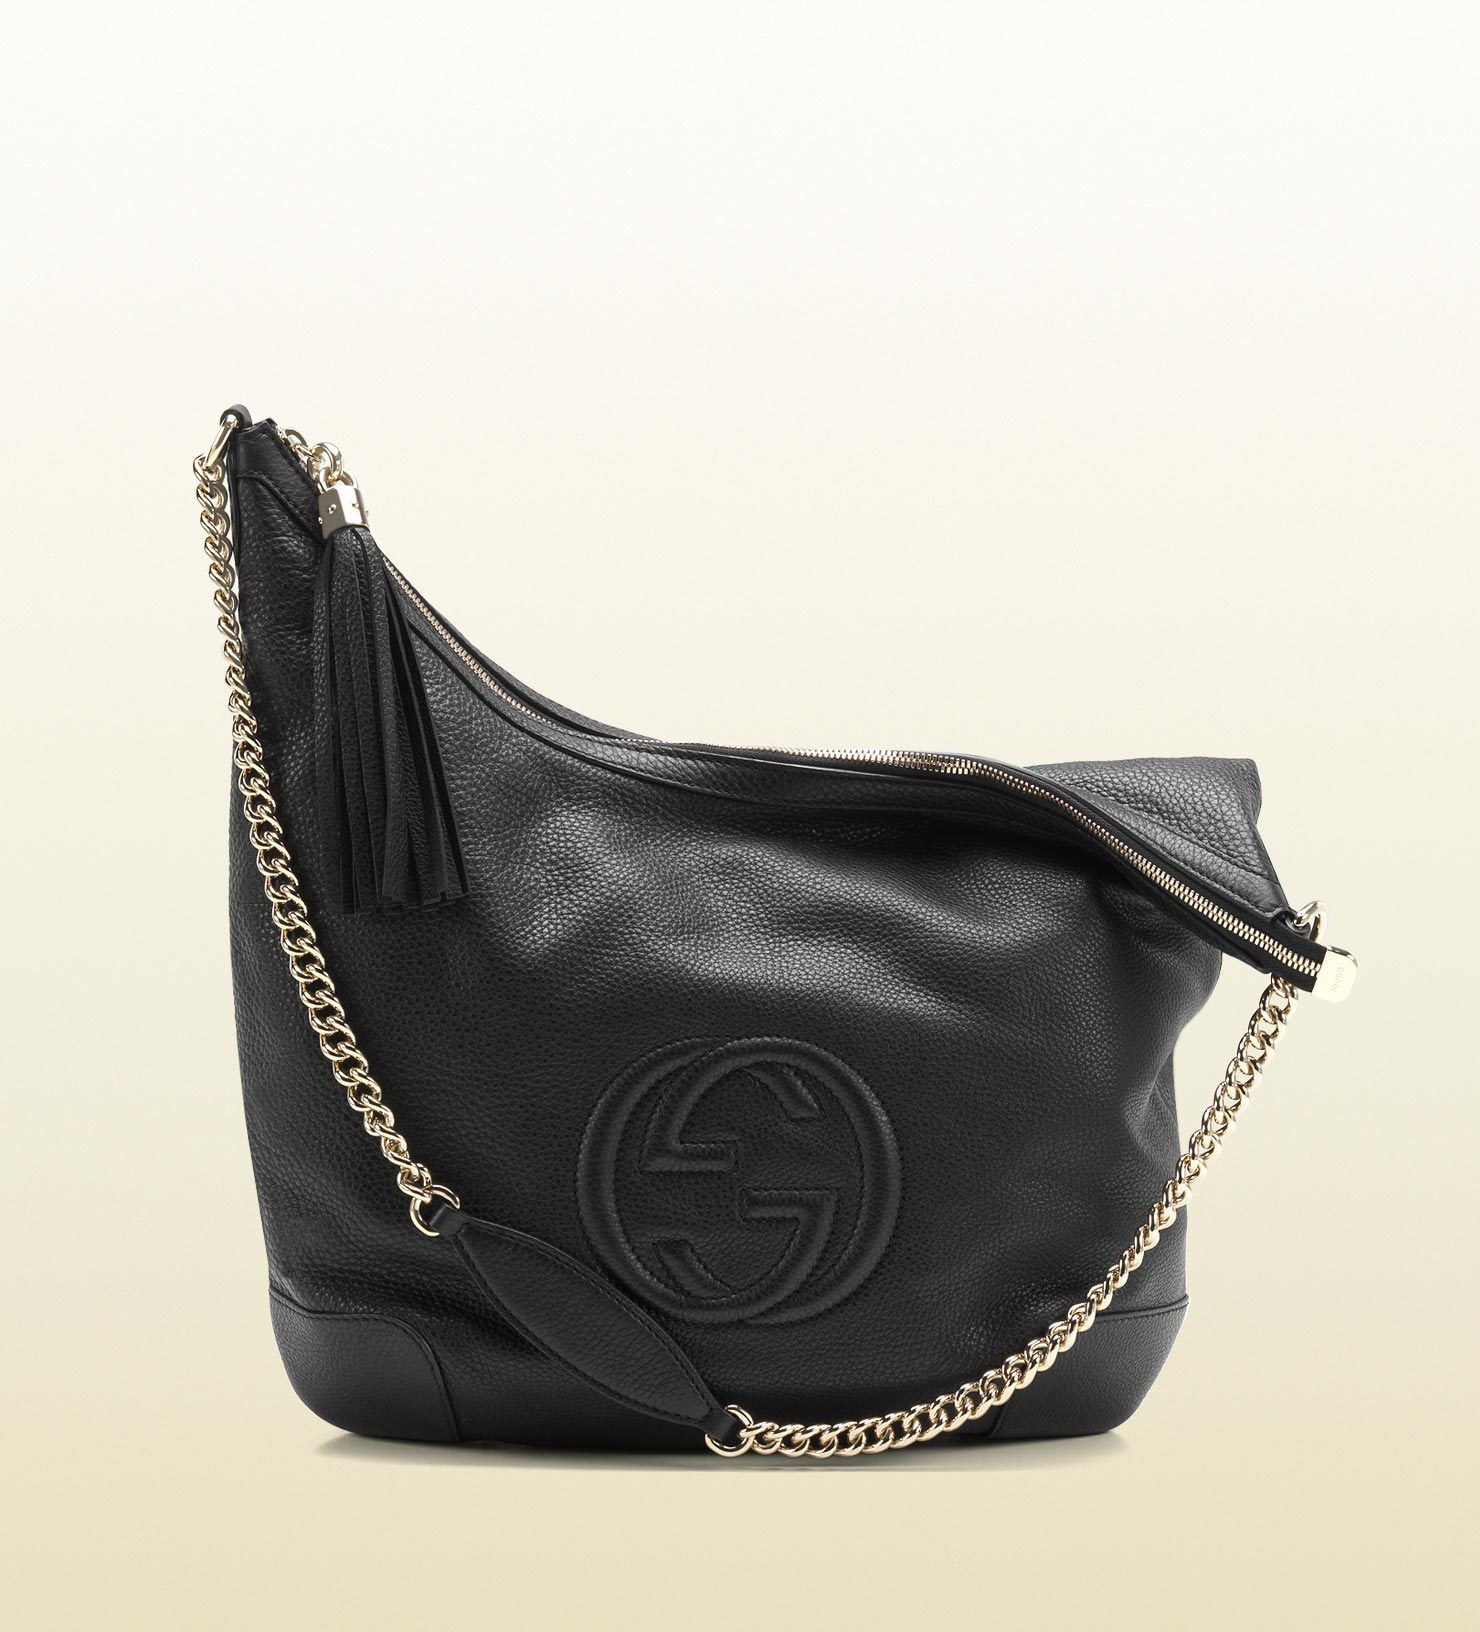 Lyst Gucci Soho Black Leather Shoulder Bag With Chain Strap In